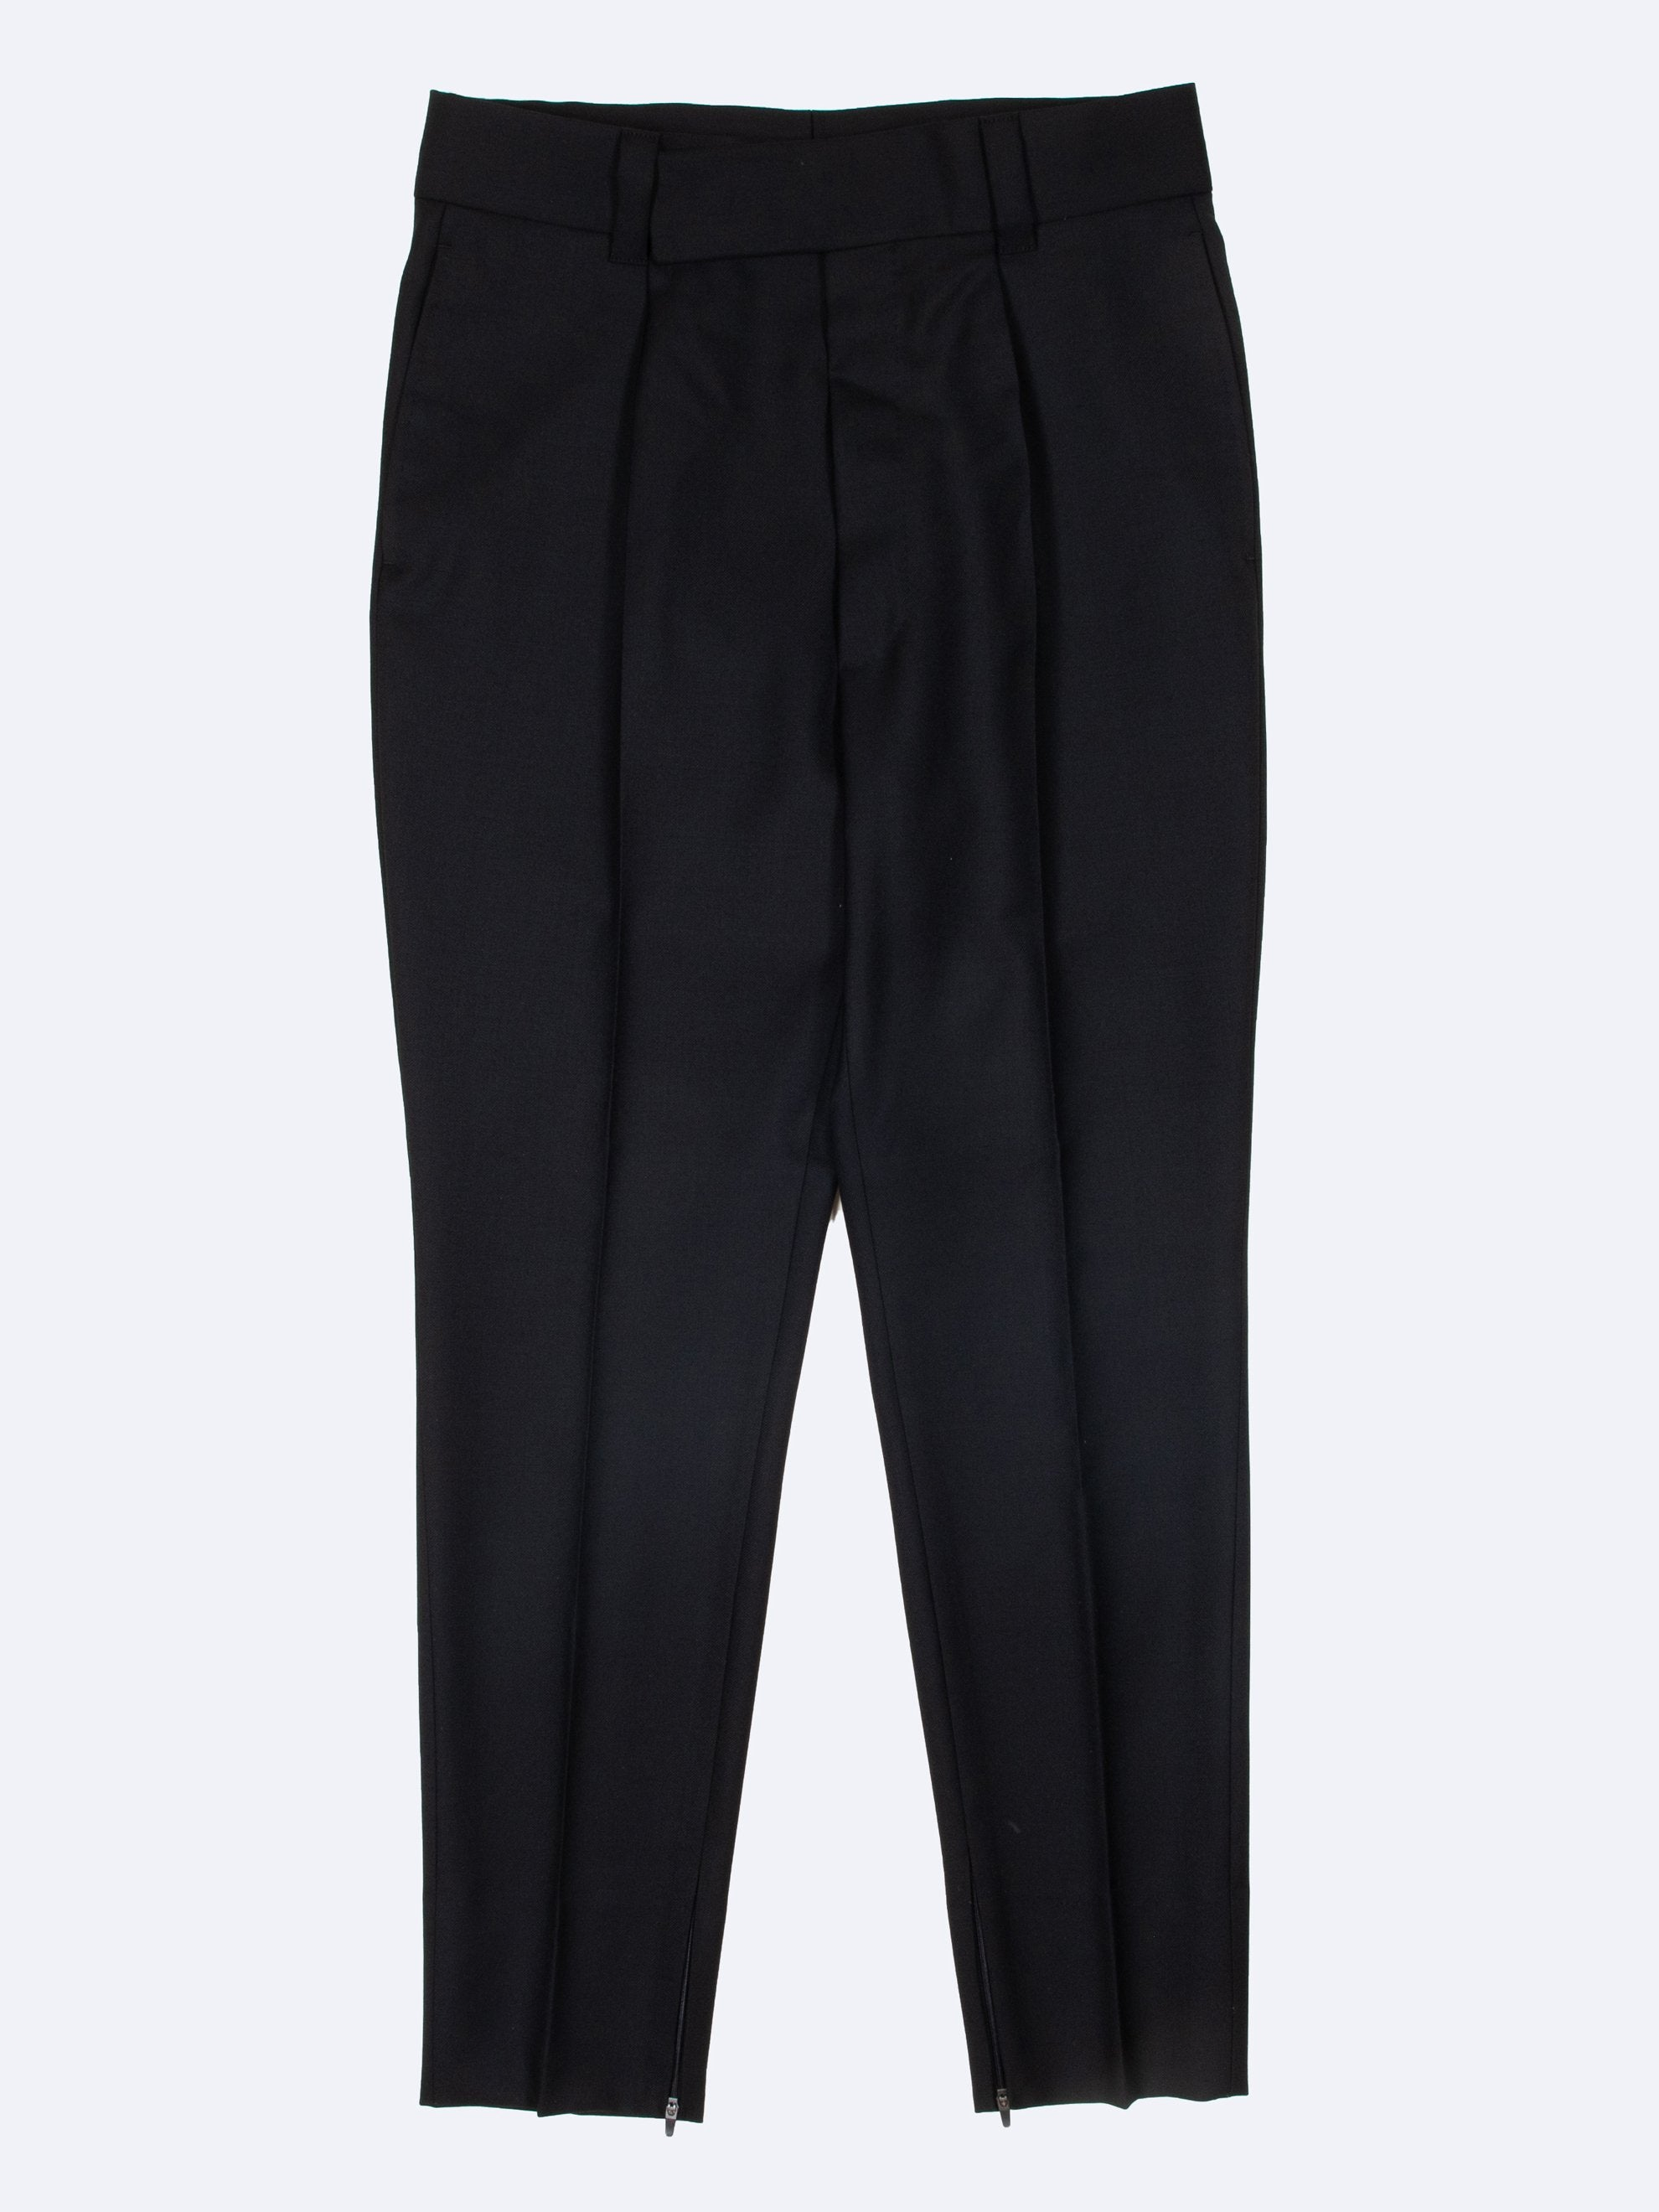 FEAROFGODZegna Long Formal Trouser